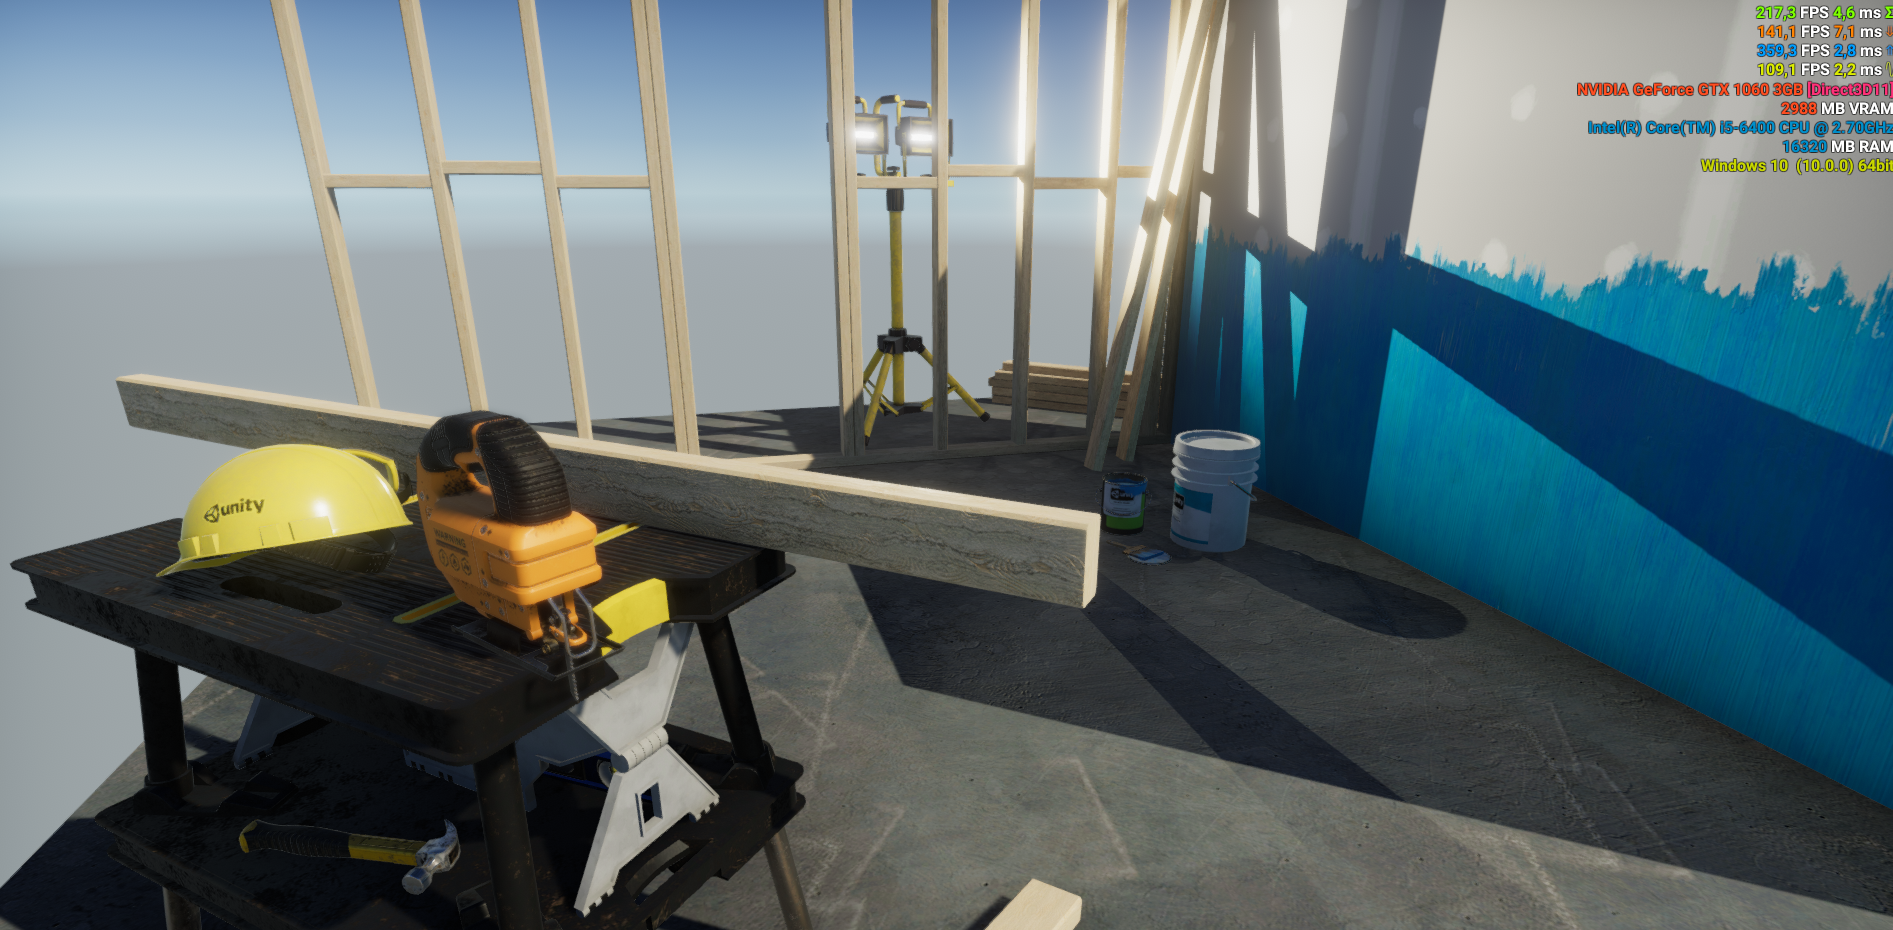 Unity_Test_FPS_Template3D_WithExtras!920x1080.PNG